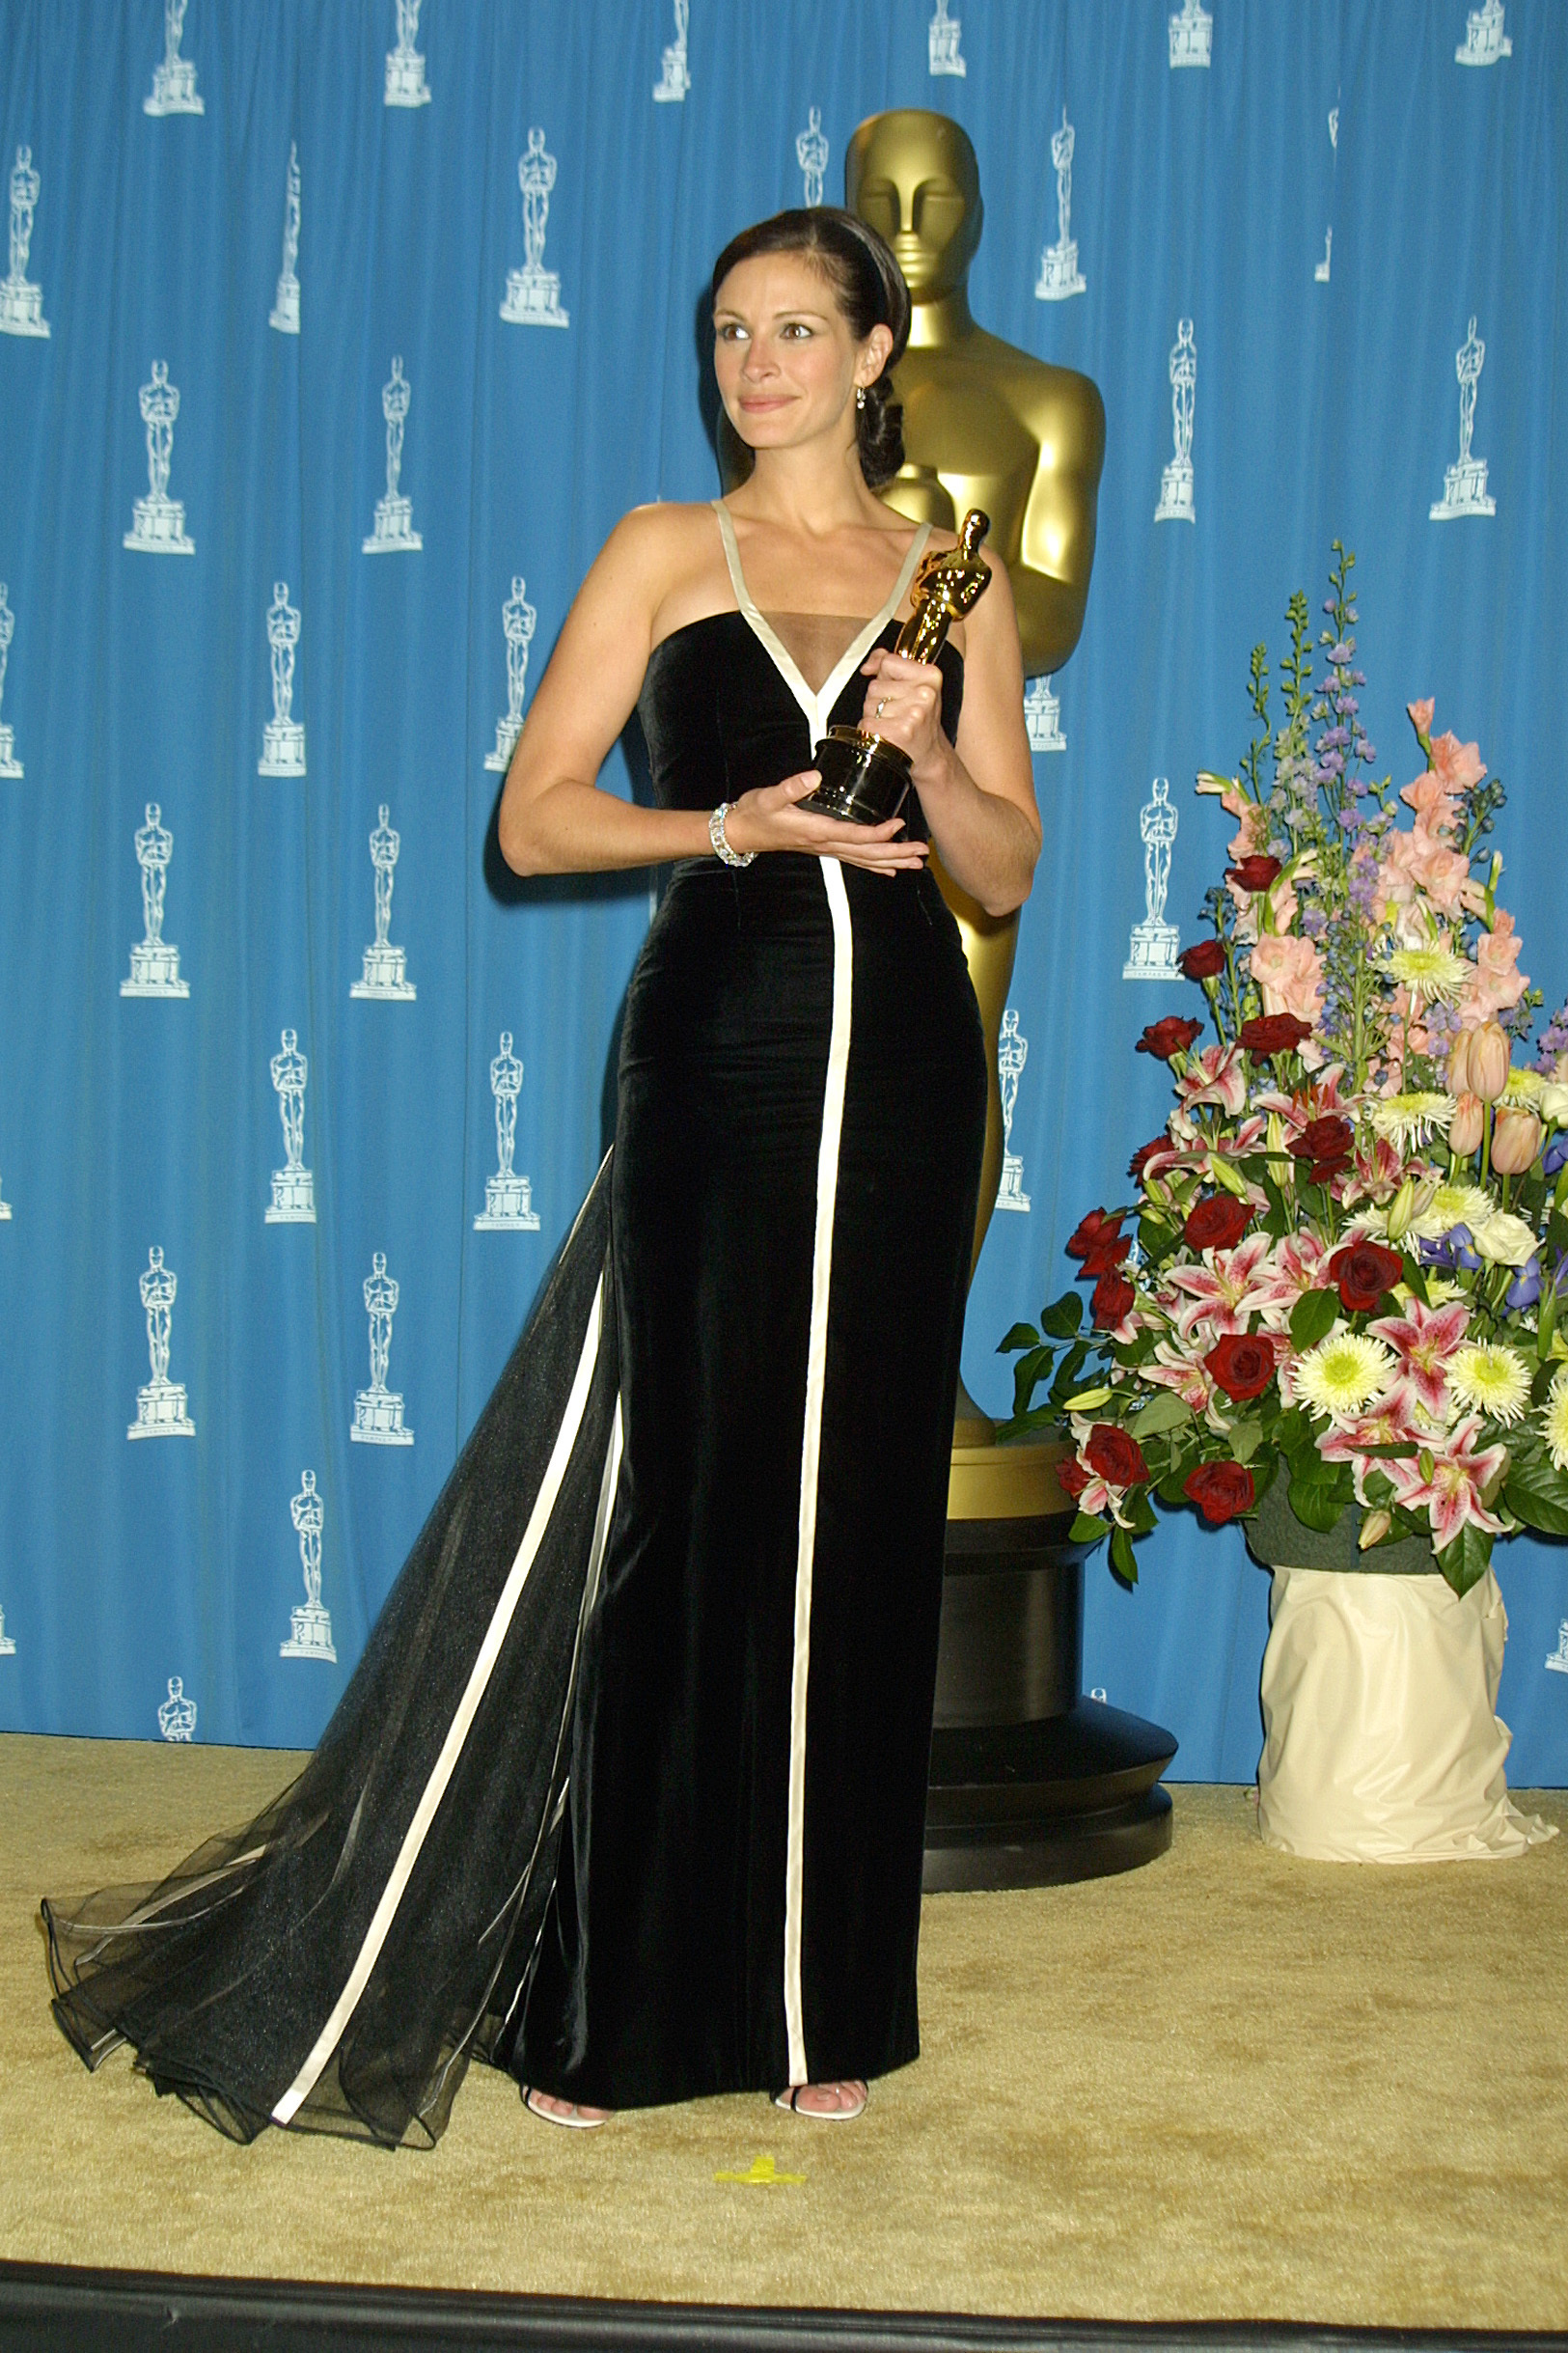 ec723c109c3 Best fashion moments from Oscars past